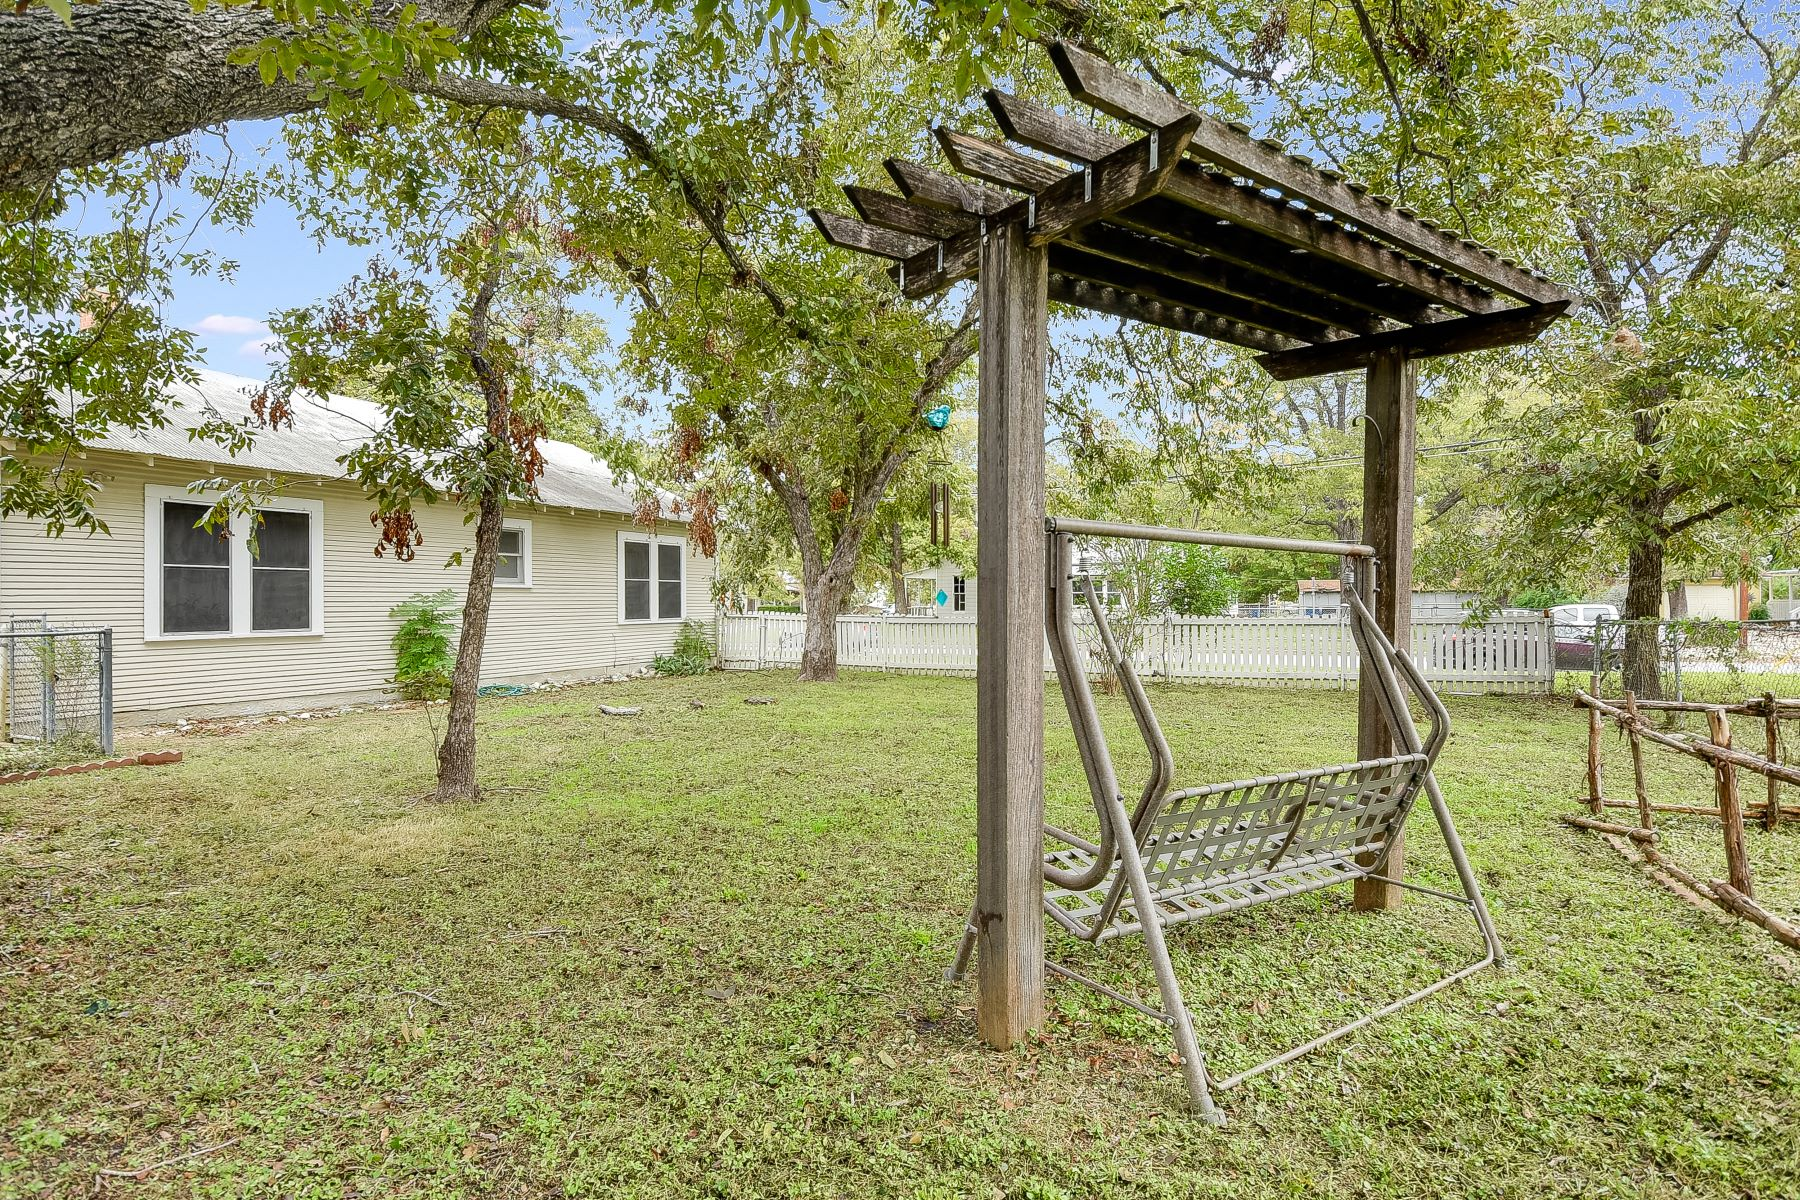 Additional photo for property listing at Craftsman Home in San Antonio 197 North Sycamore Ave New Braunfels, Texas 78130 United States